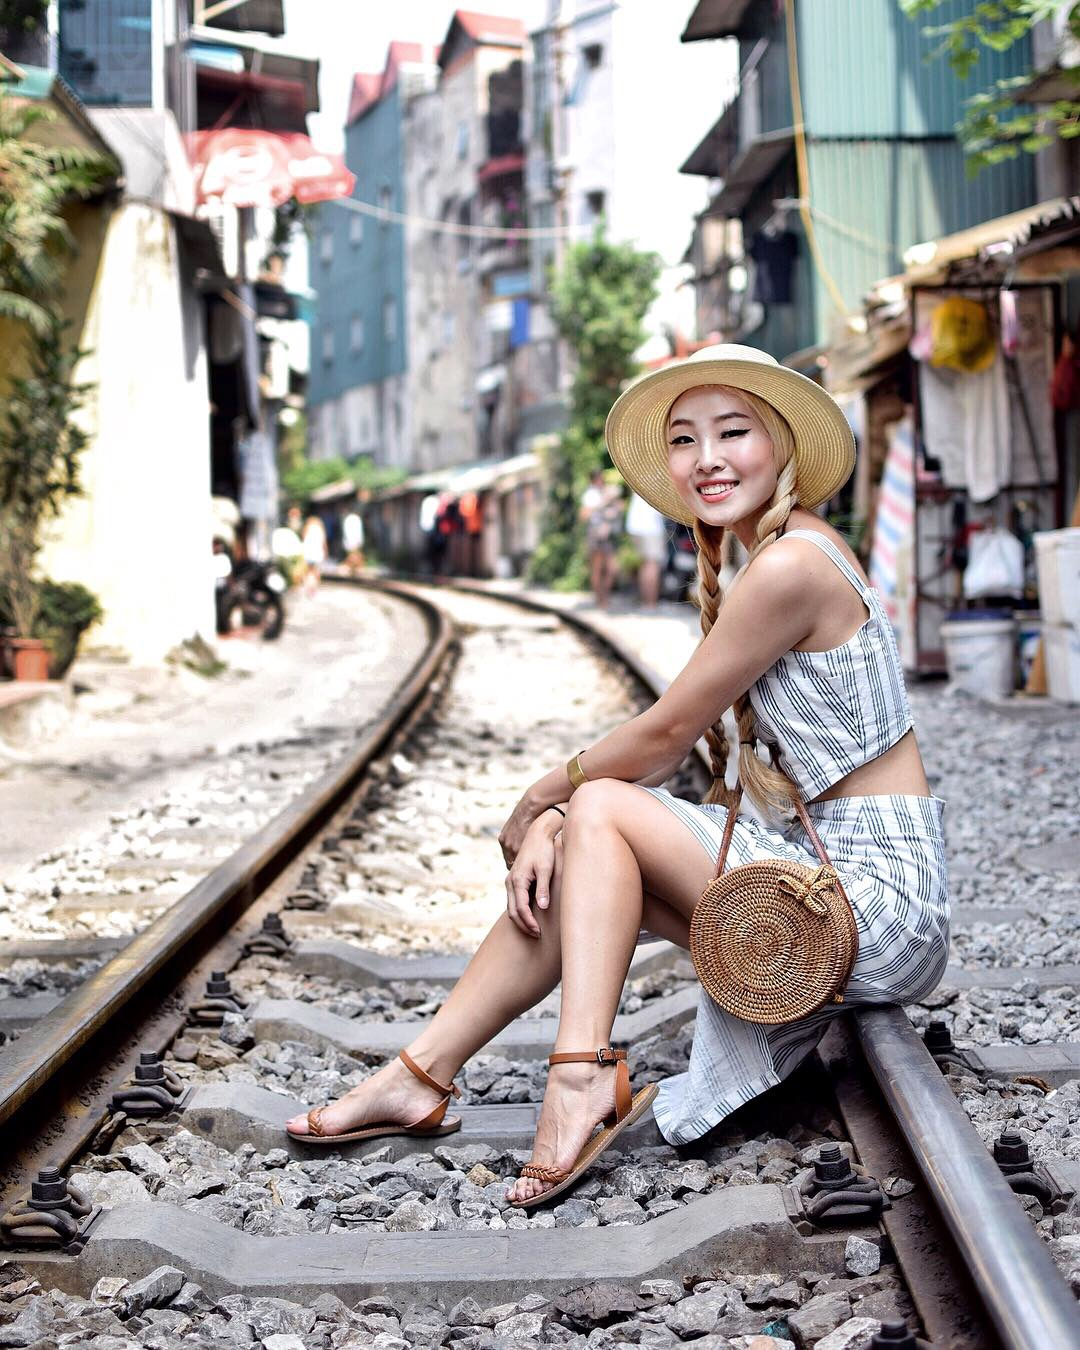 HANOI TRAIN STREET Wouldn't it be bizarre if a train ran inches from your doorway? That's exactly what happens at 3 and 7 pm every single day for the residents living on Hanoi Train Street in the Old Quarter!